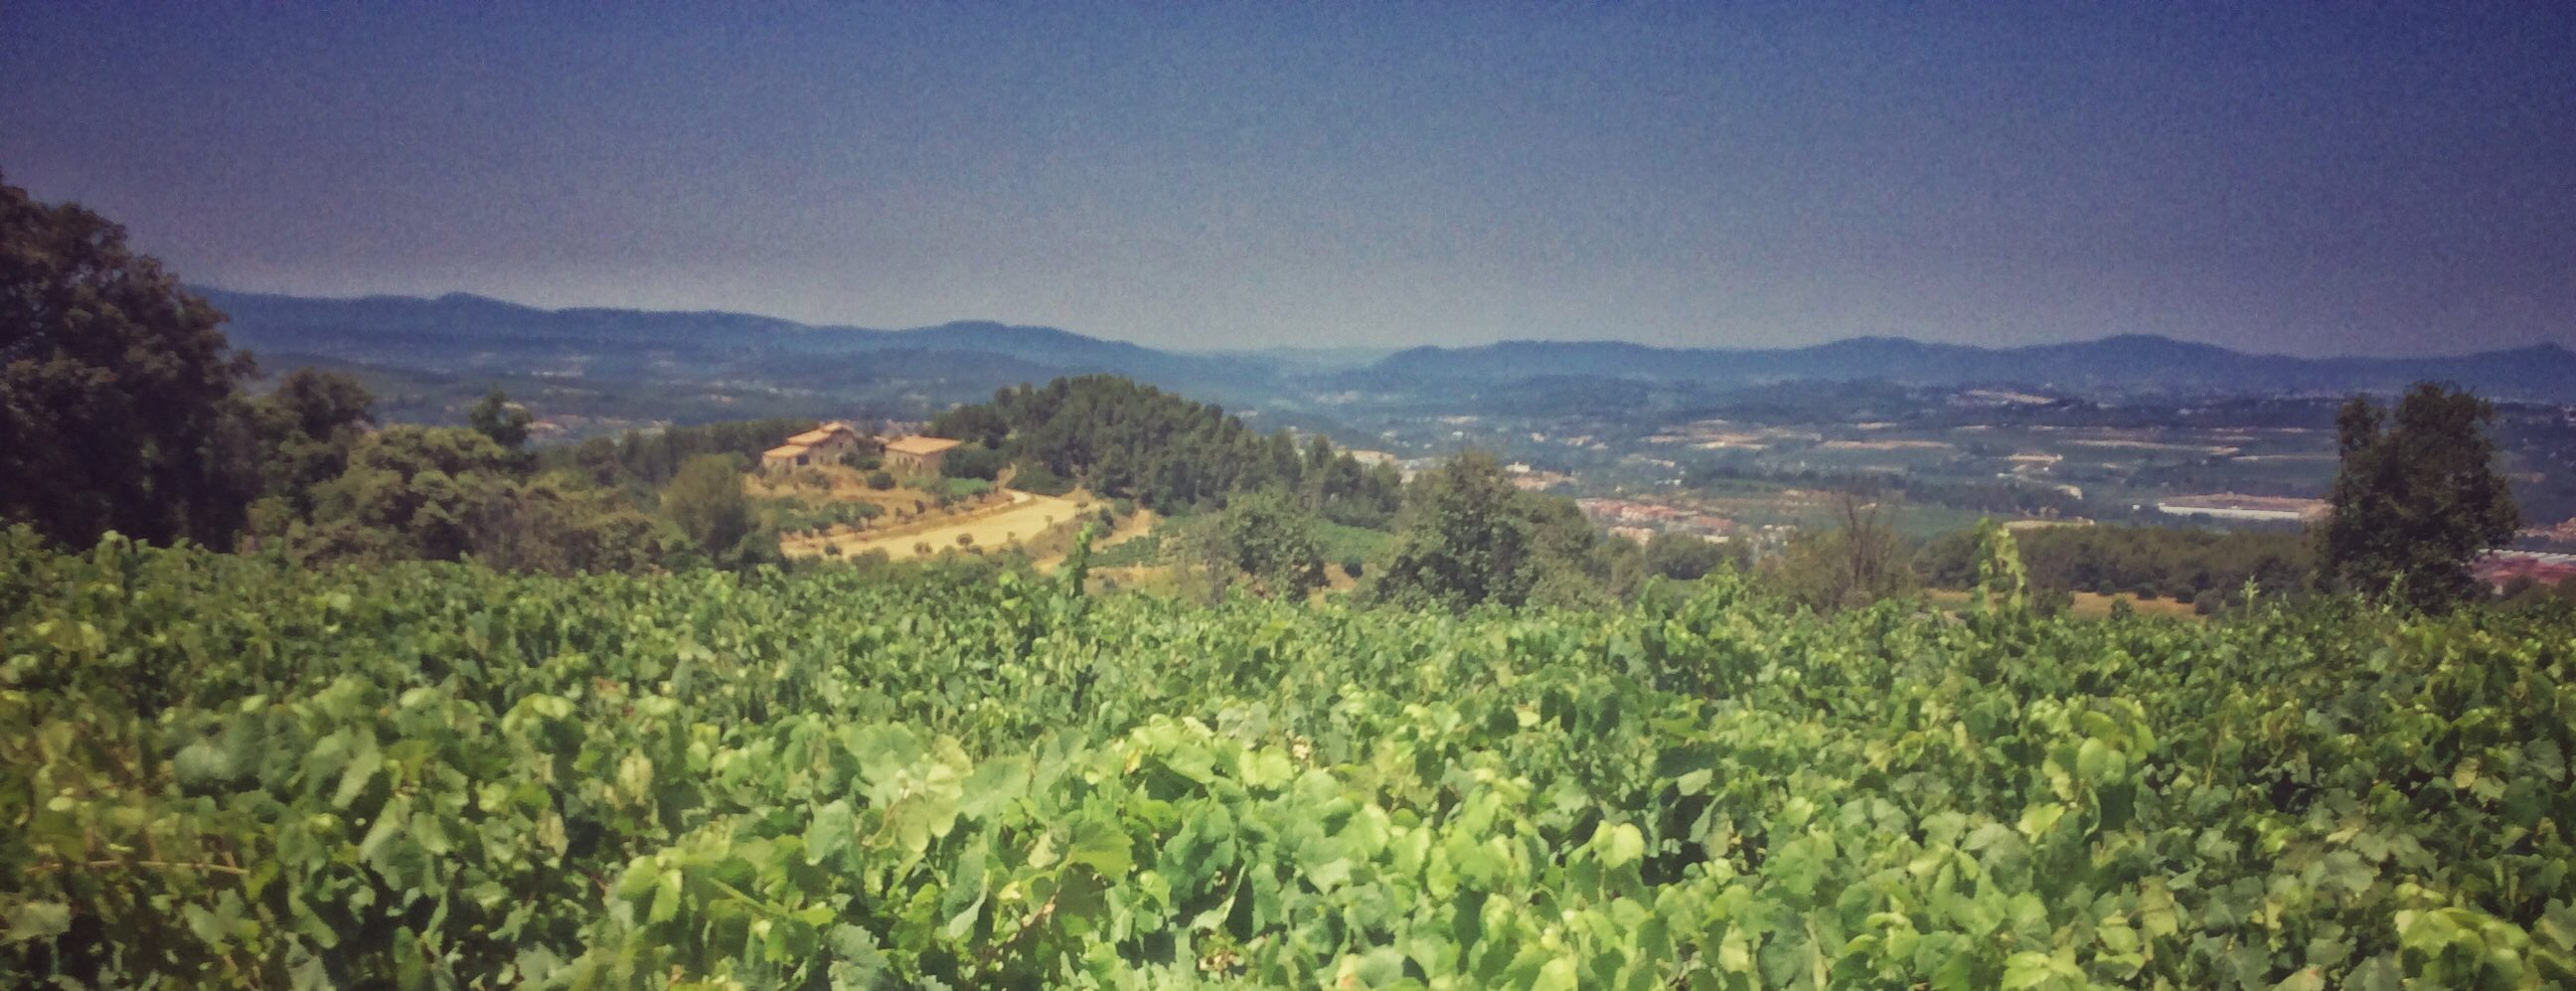 day trip from Barcelona to Penedes